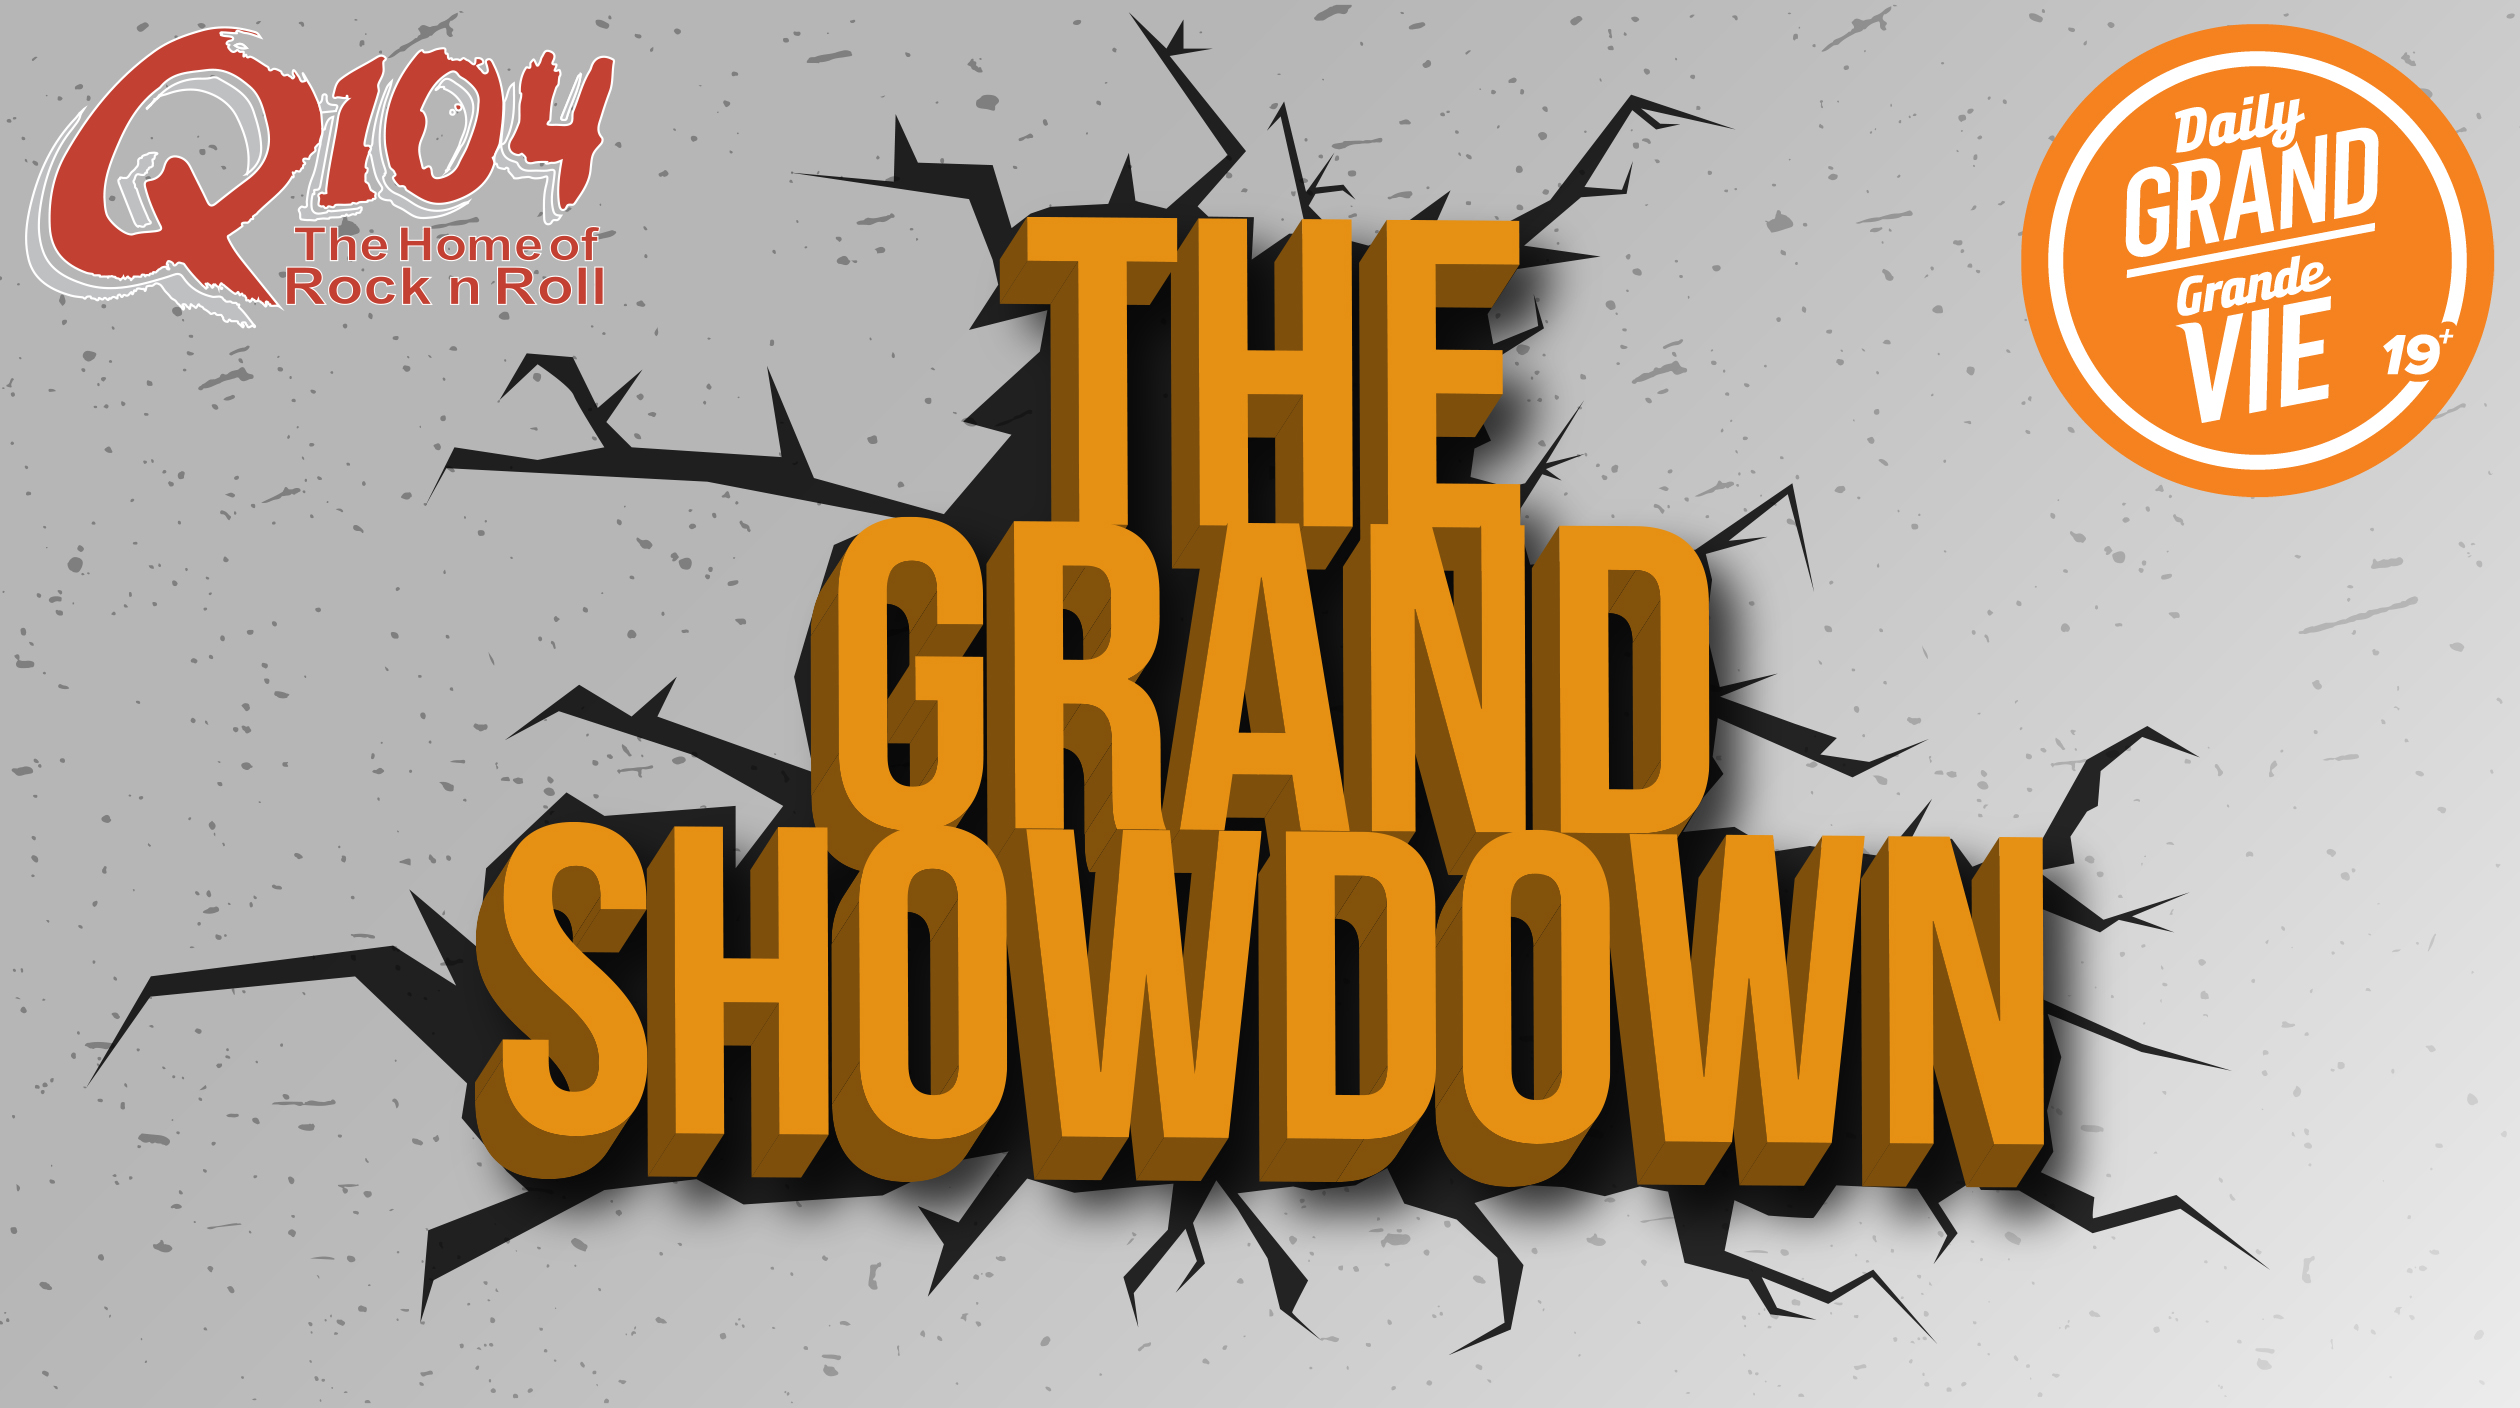 Q104 The Grand Showdown